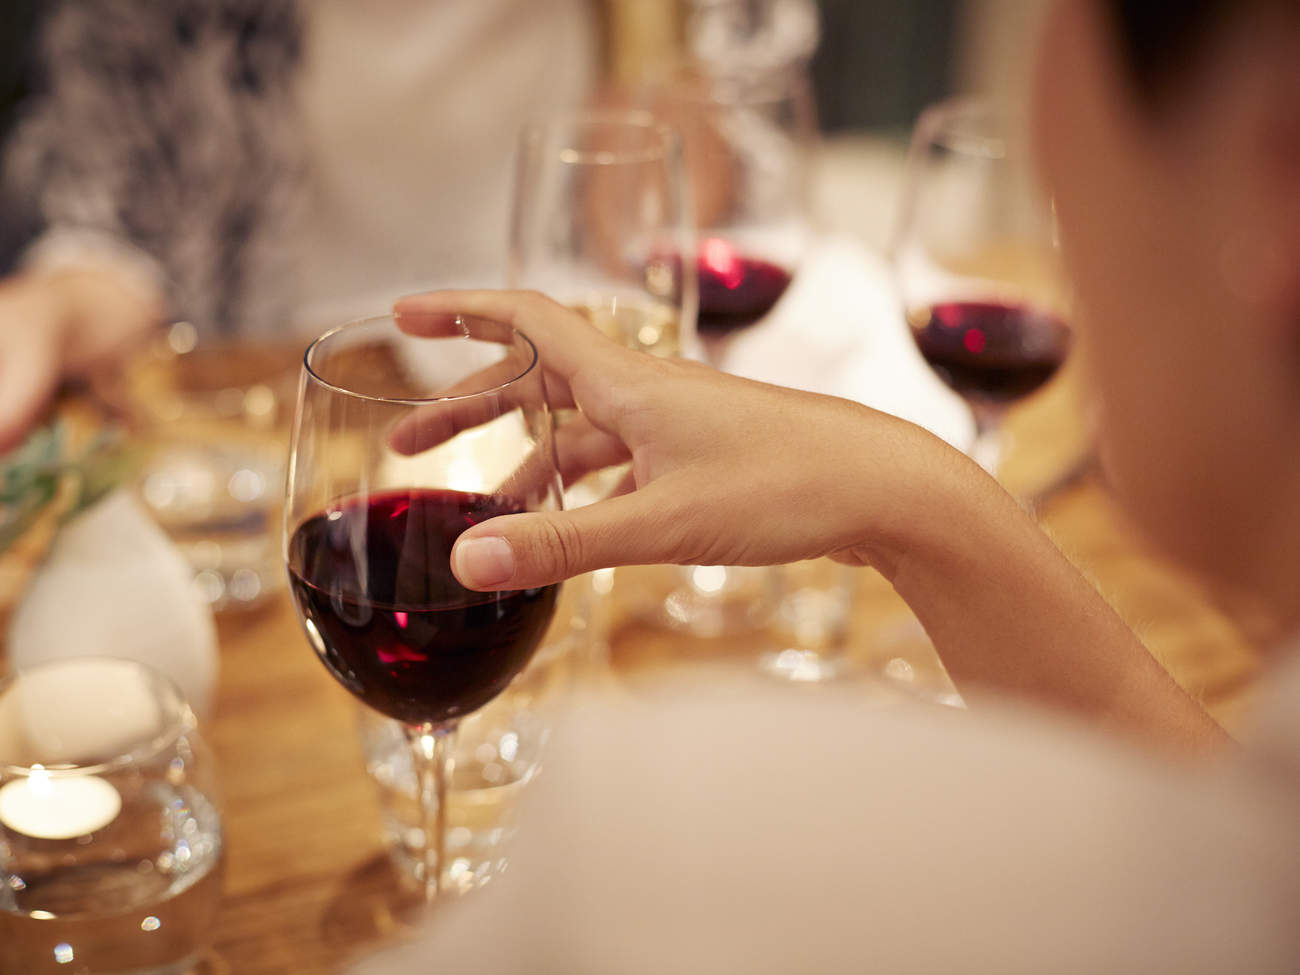 drinking-alcohol-wine-dinner